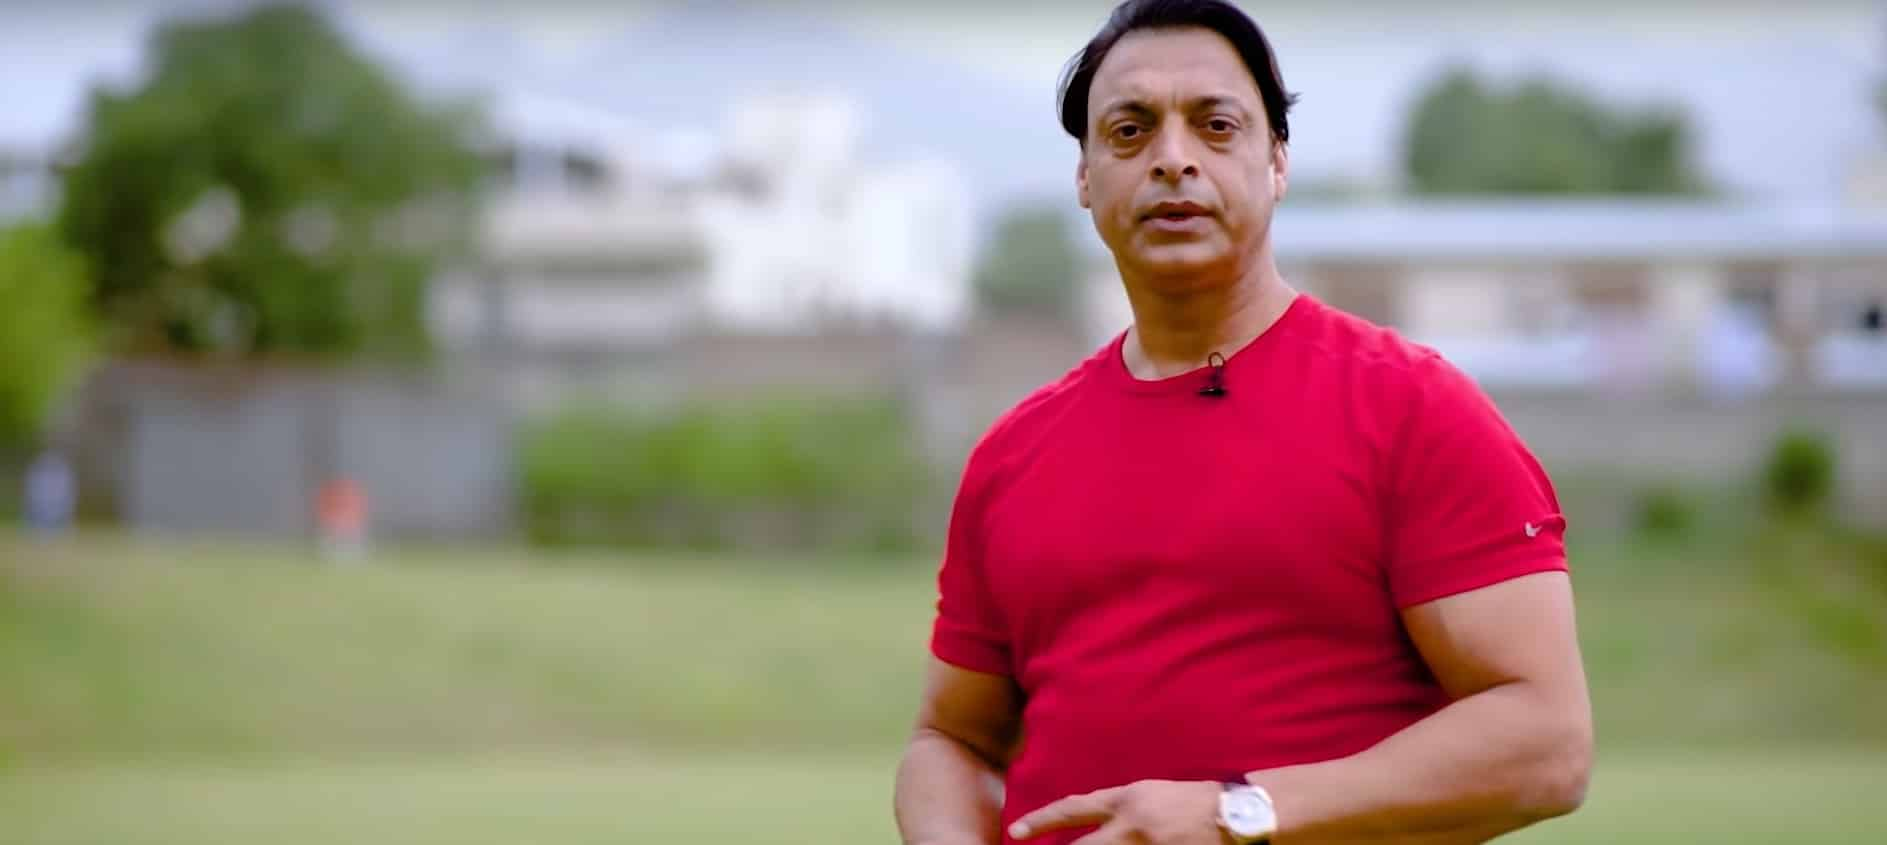 Shoaib Akhter YouTube Channel